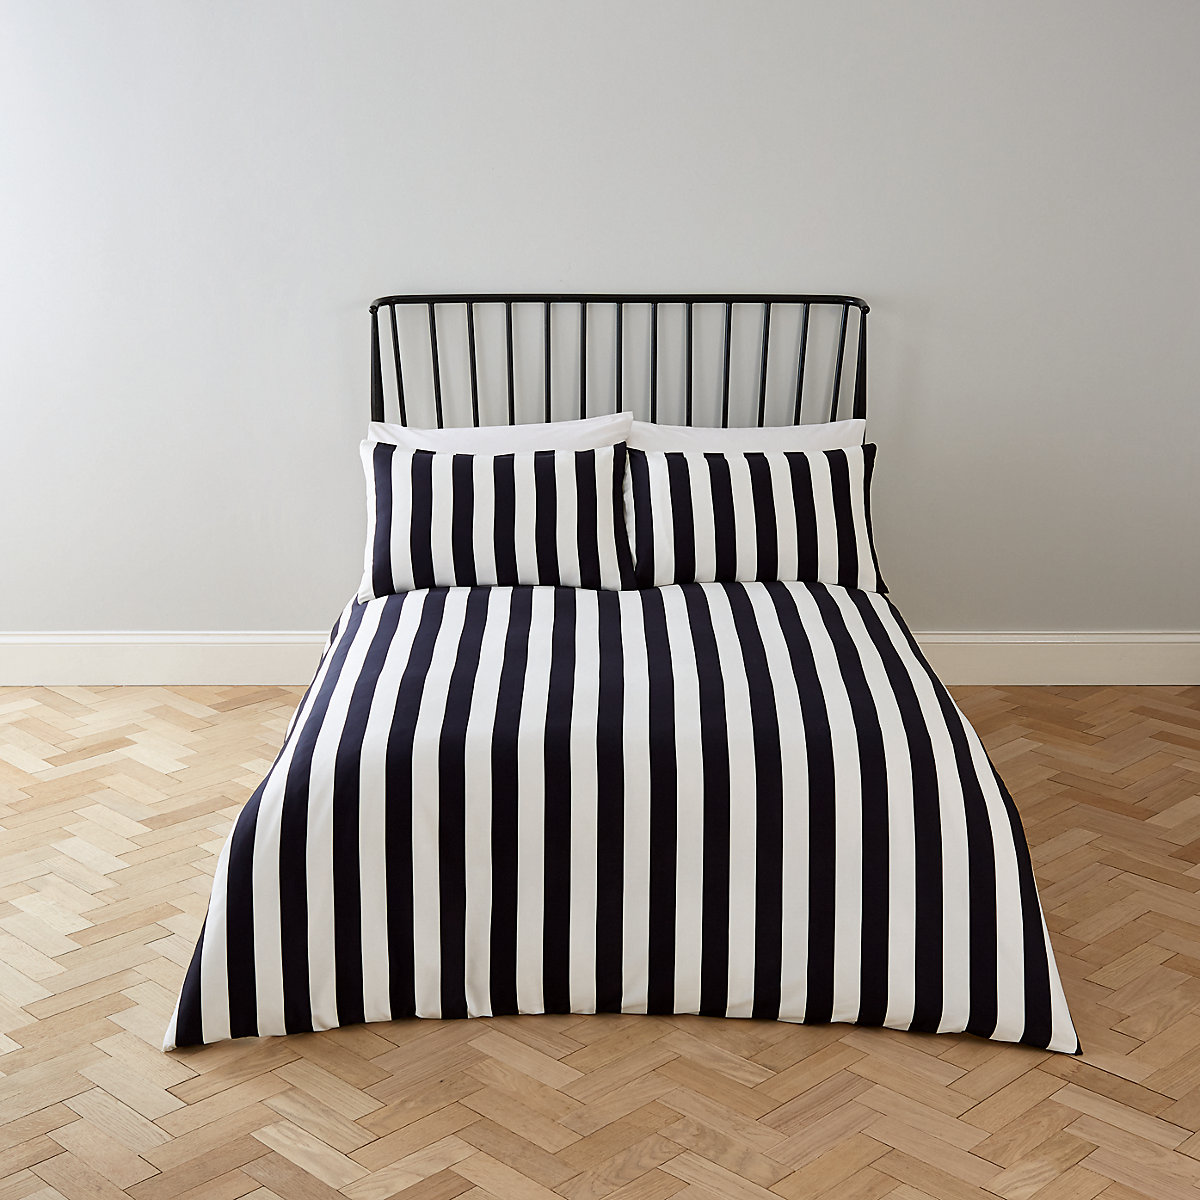 Black stripe print super king duvet bed set